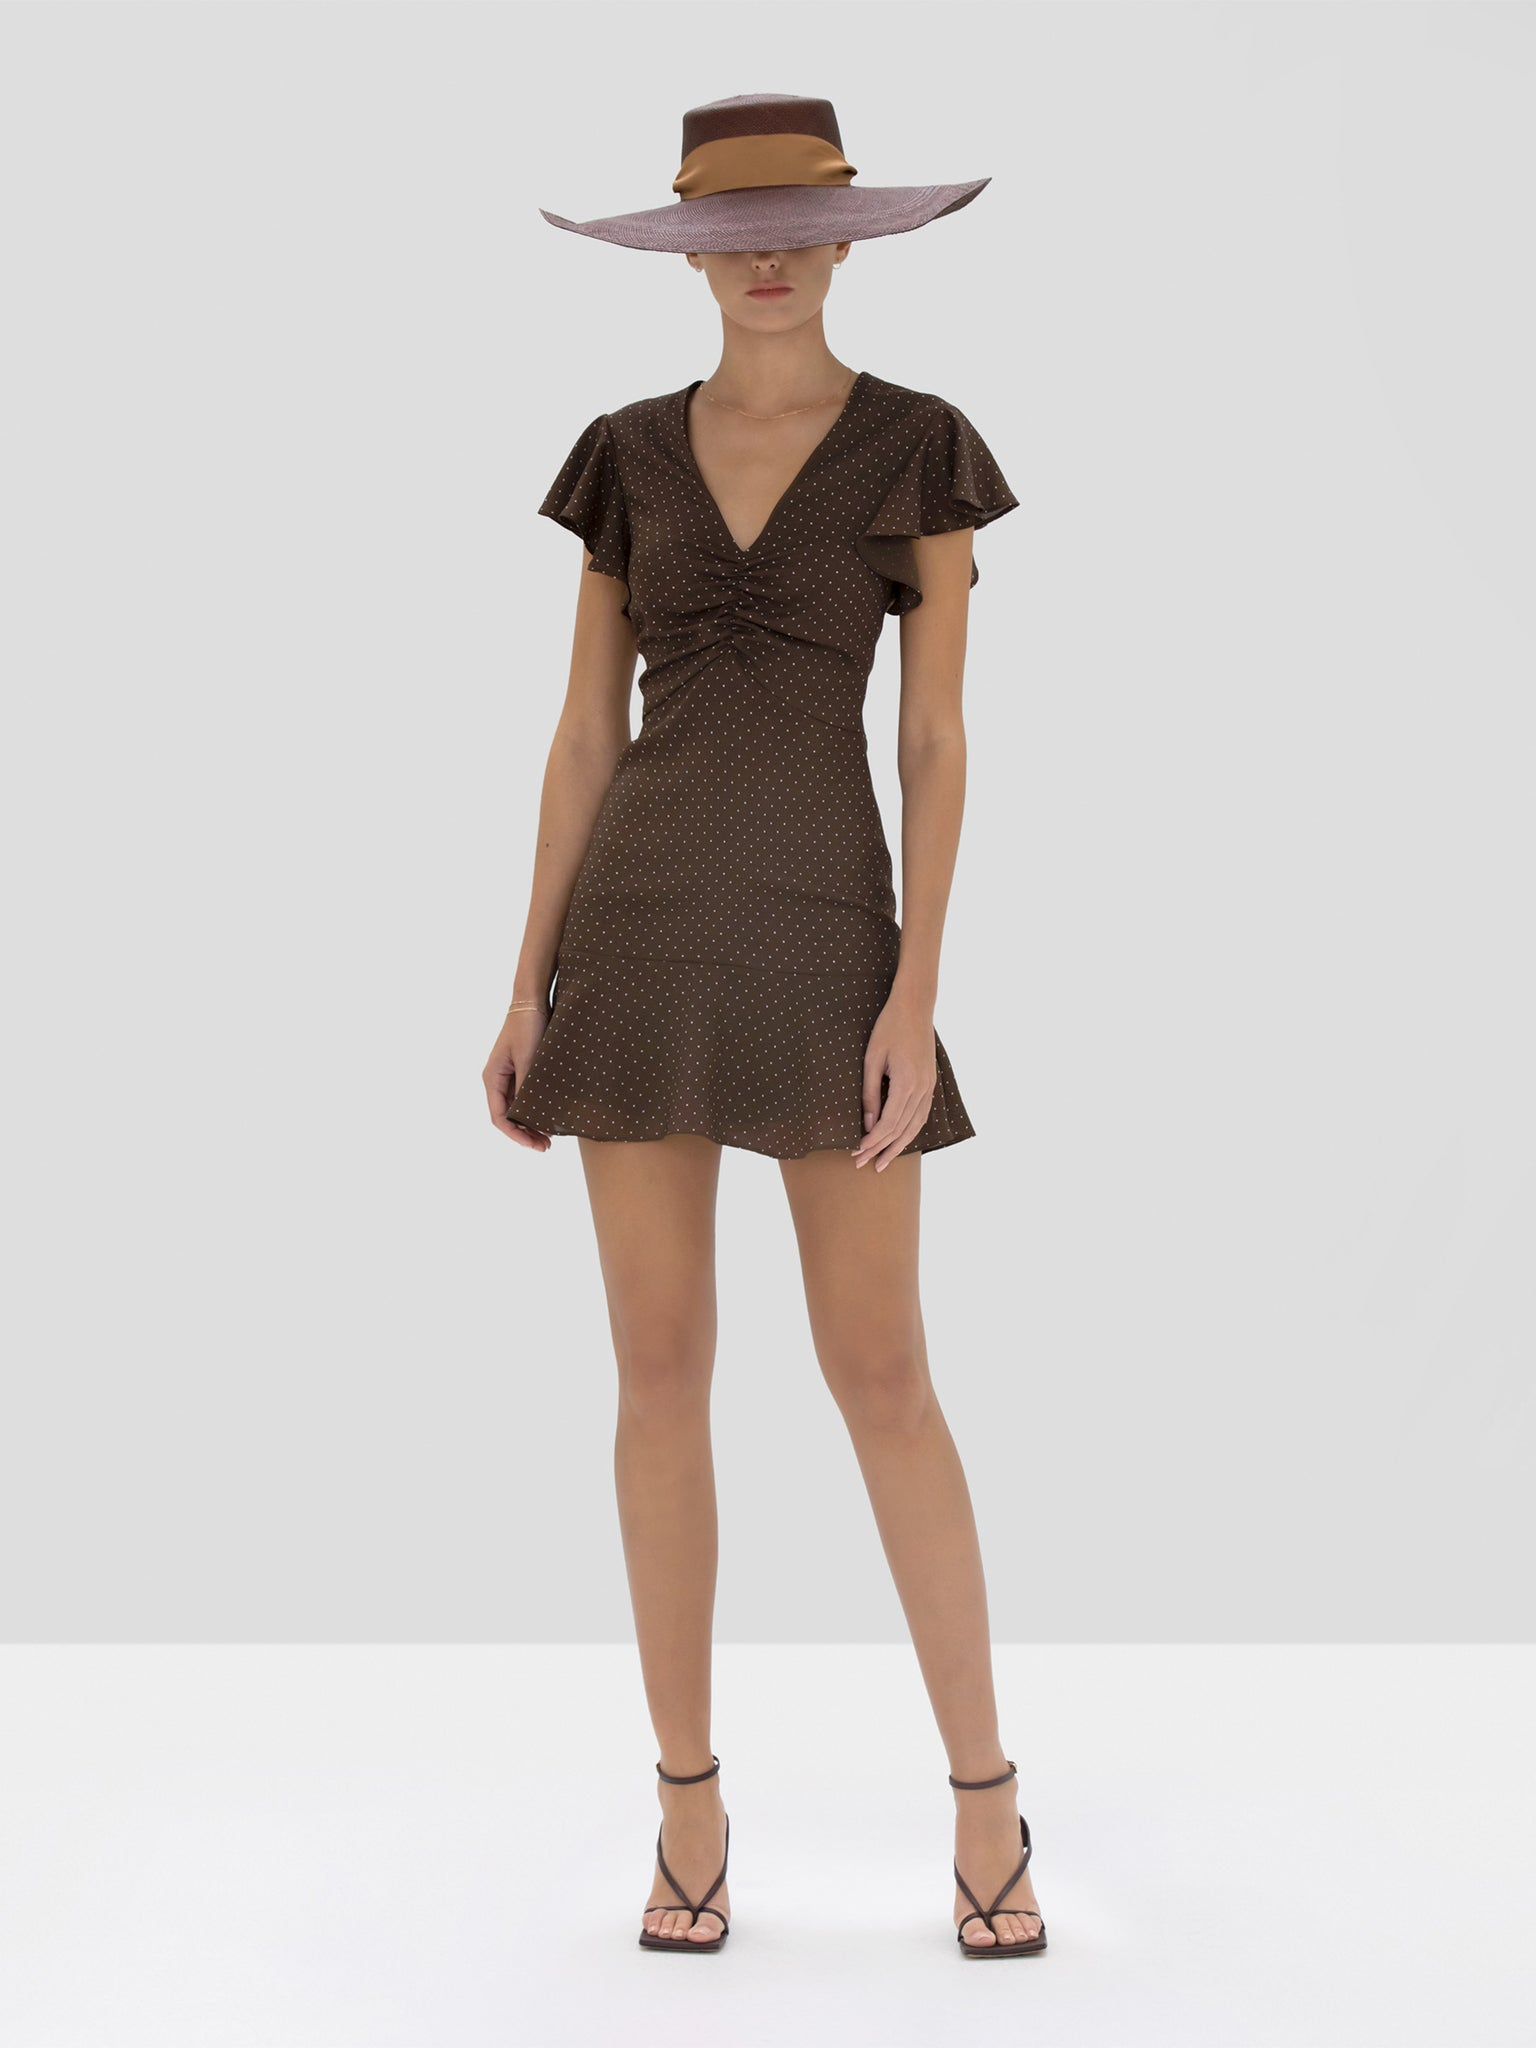 Alexis Benza Dress in Mocha Dot Linen from the Spring Summer 2020 Collection